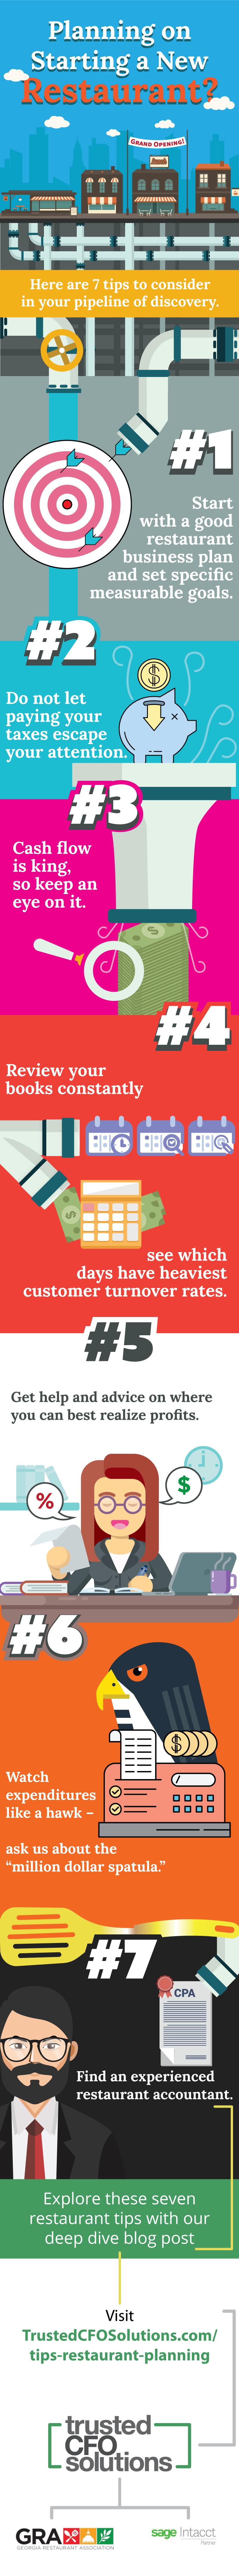 Infographic: 7 Tips for Successful Restaurant Planning